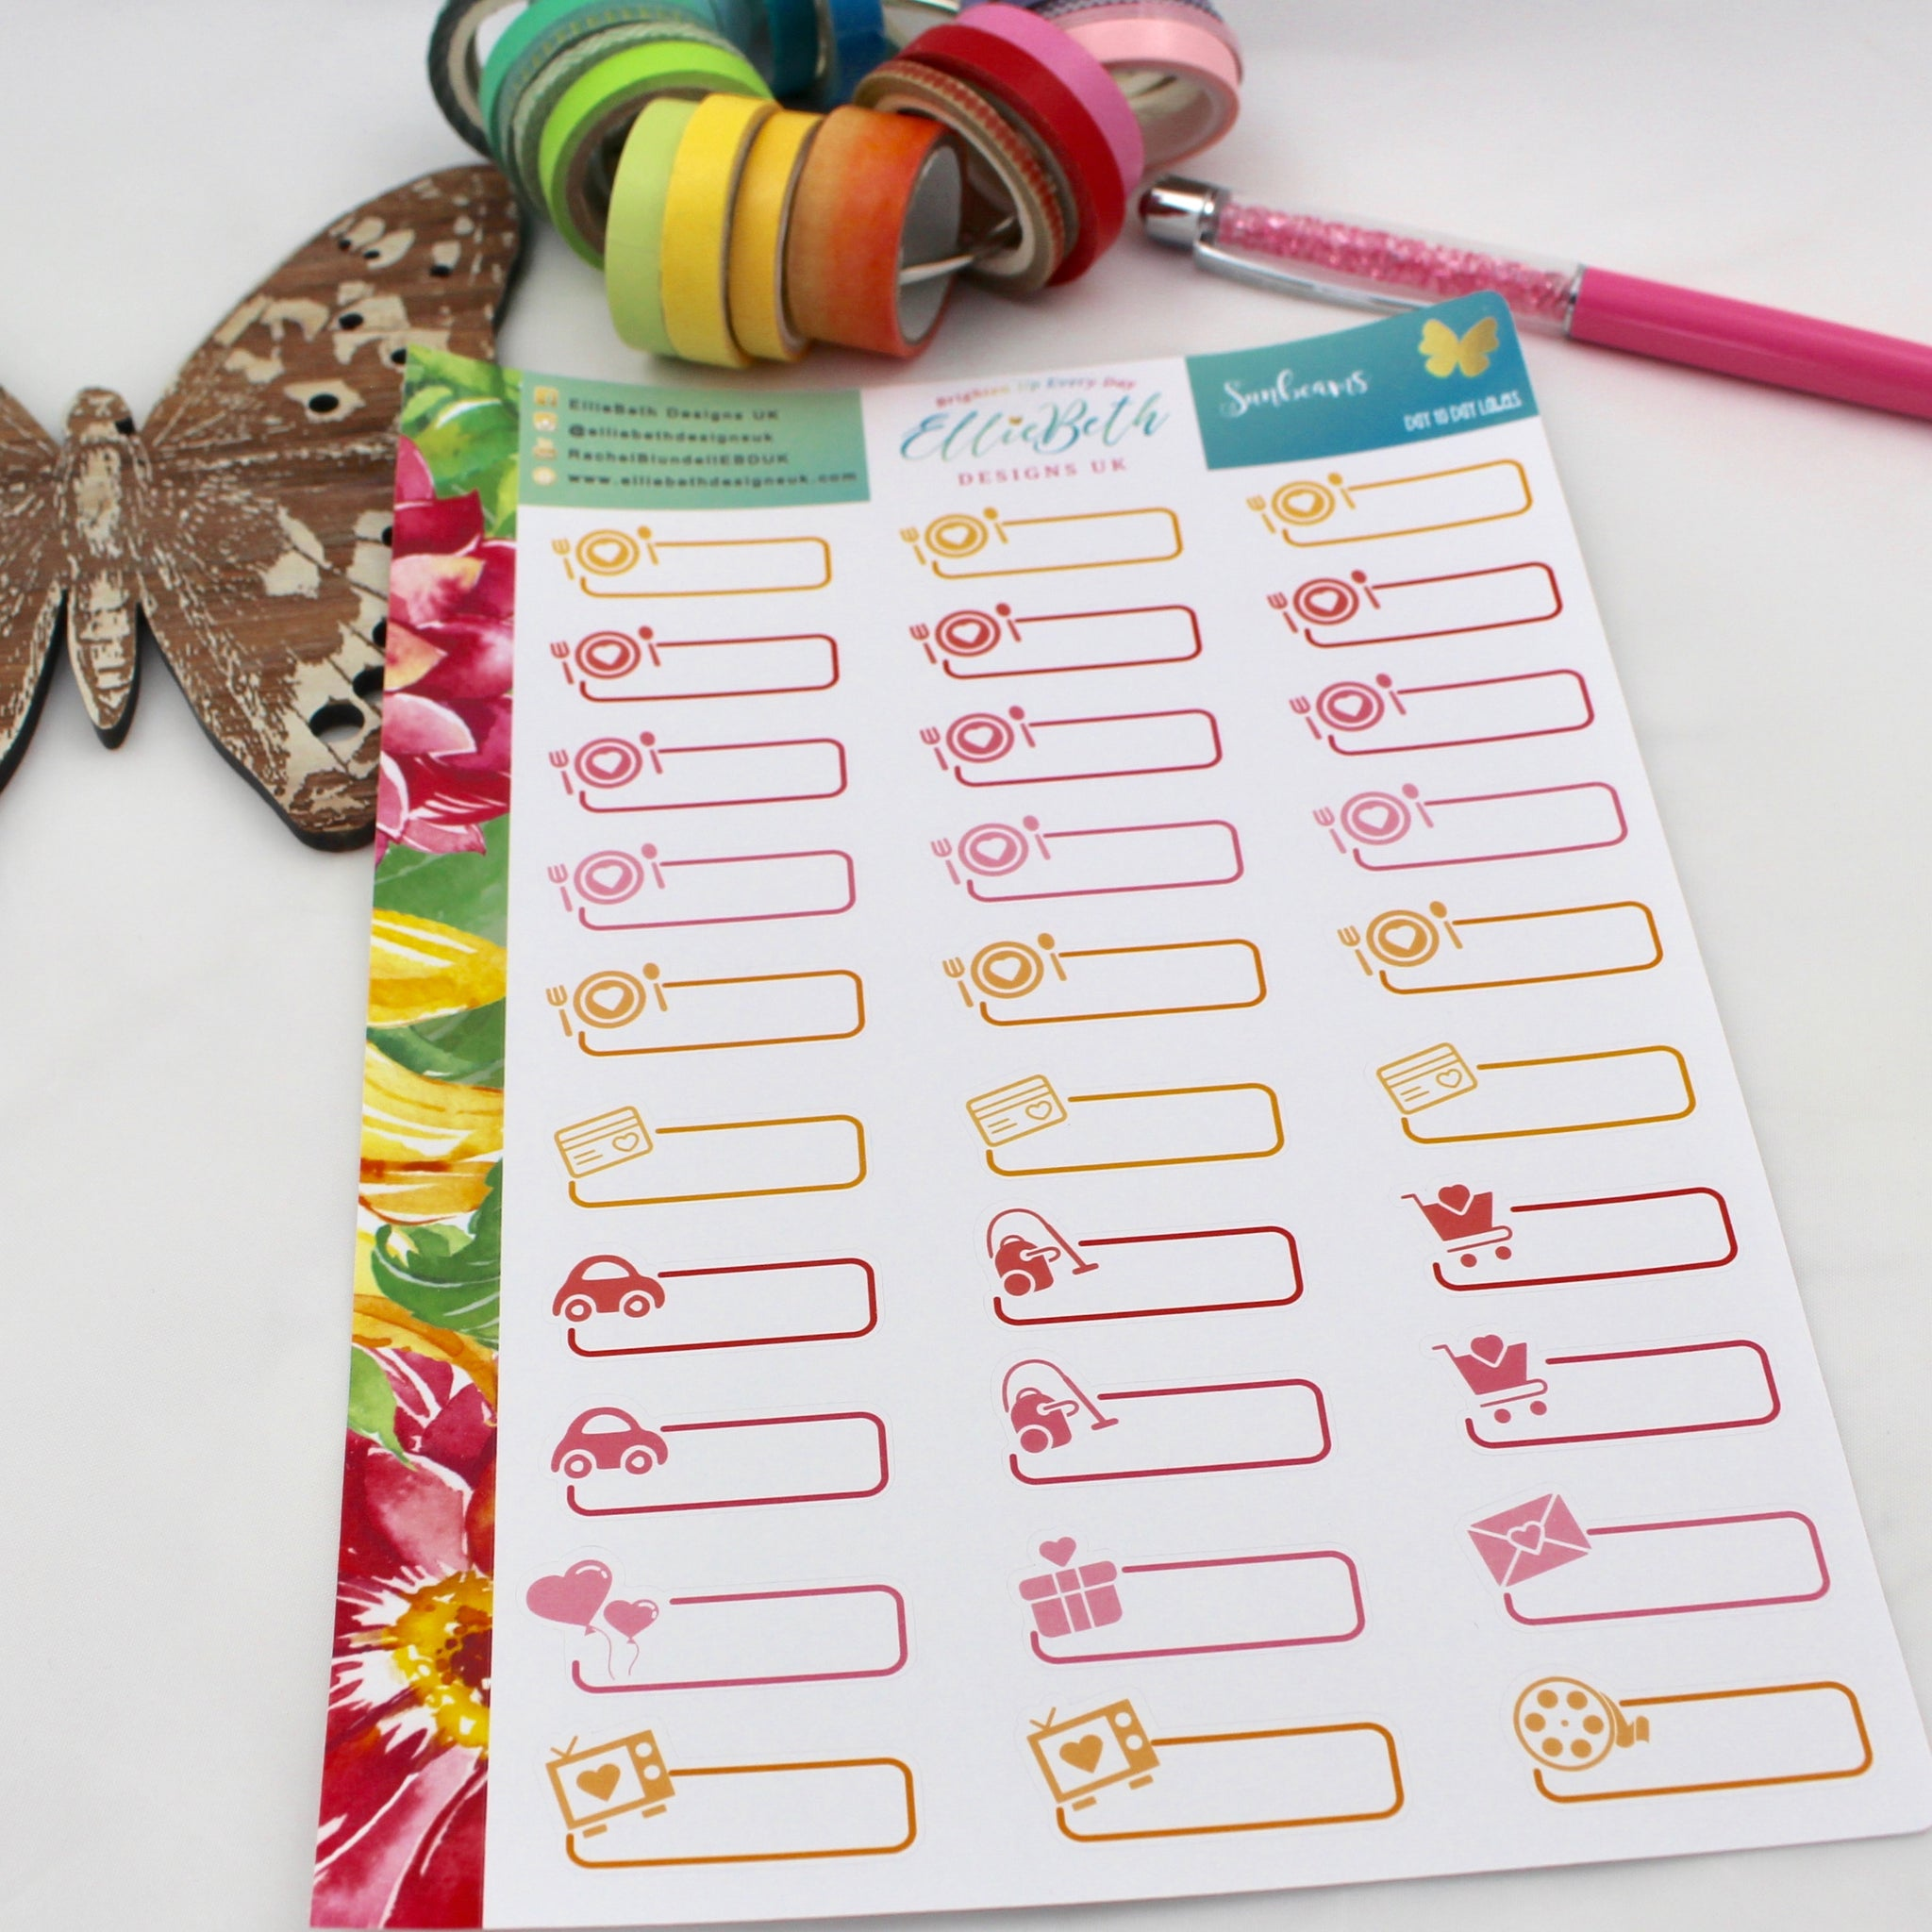 Sunbeams - Day to Day Labels - A5 binder ready planner stickers